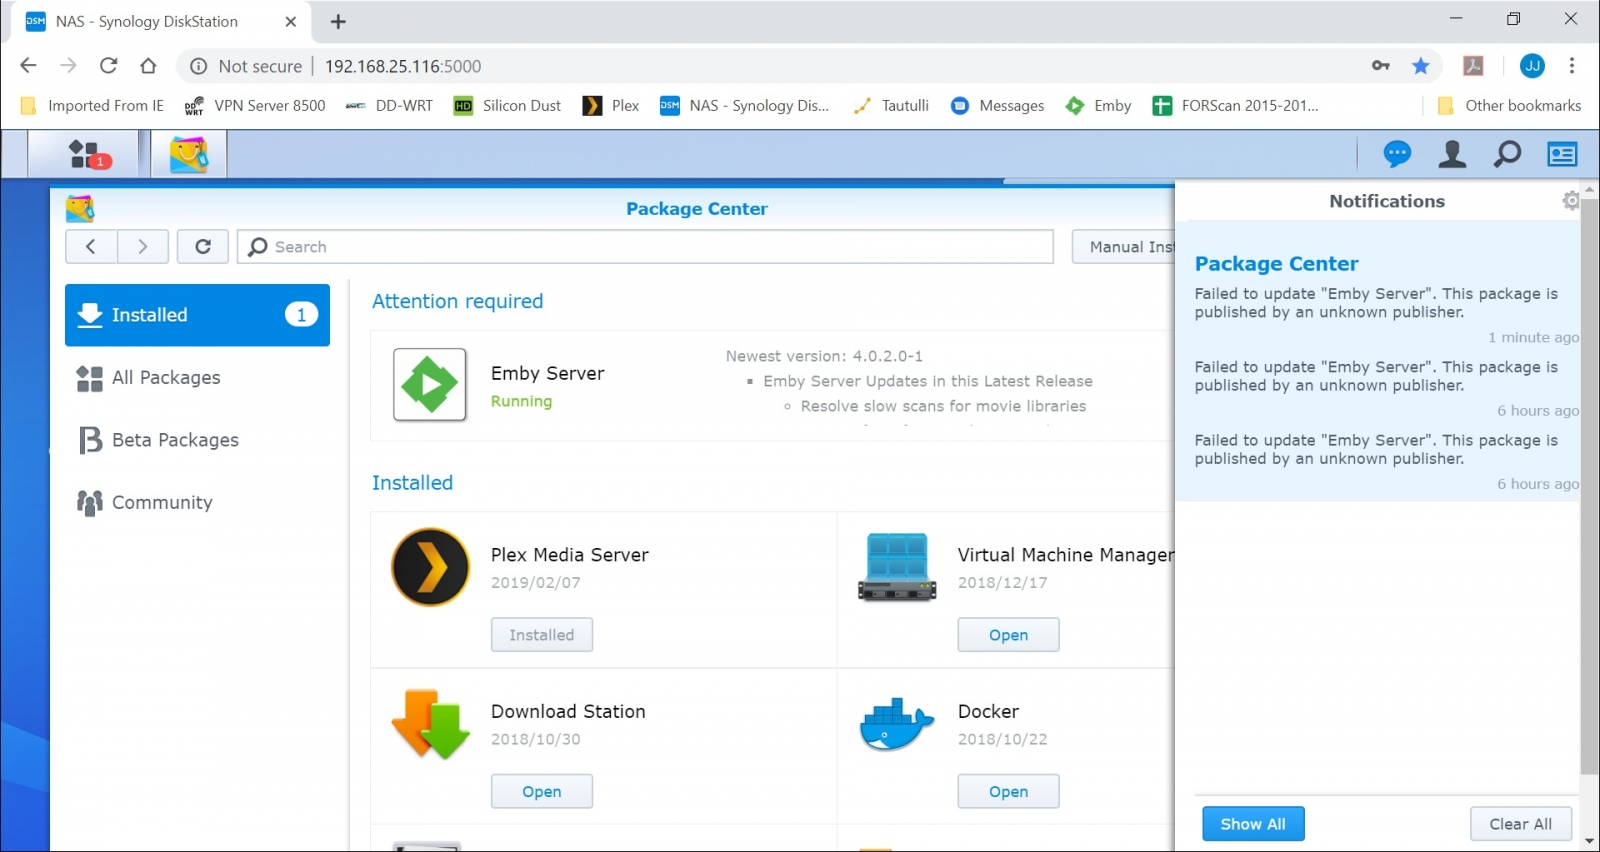 Stable 4 0 2 0 - Now Available for All Supported Synology